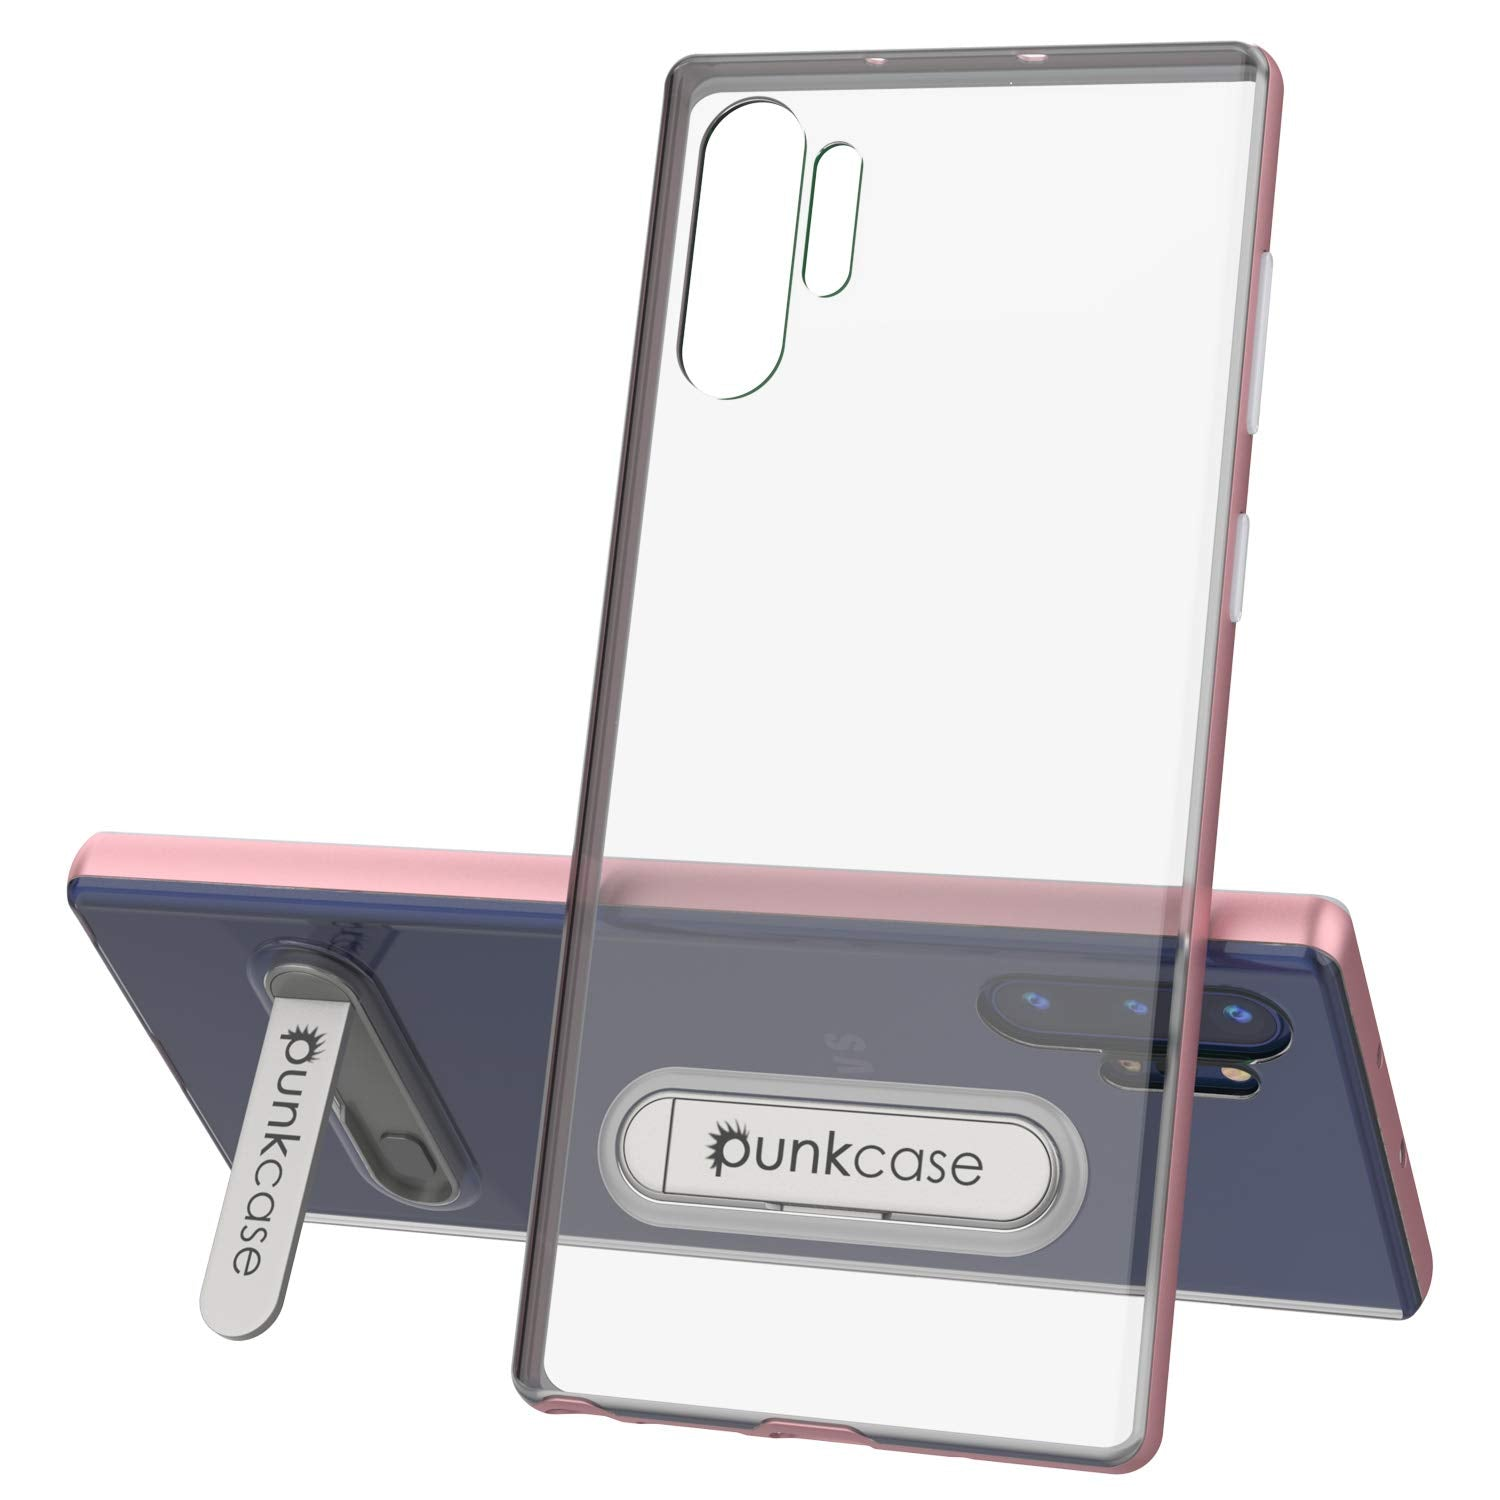 Galaxy Note 10+ Plus Lucid 3.0 PunkCase Armor Cover w/Integrated Kickstand and Screen Protector [Rose Gold]